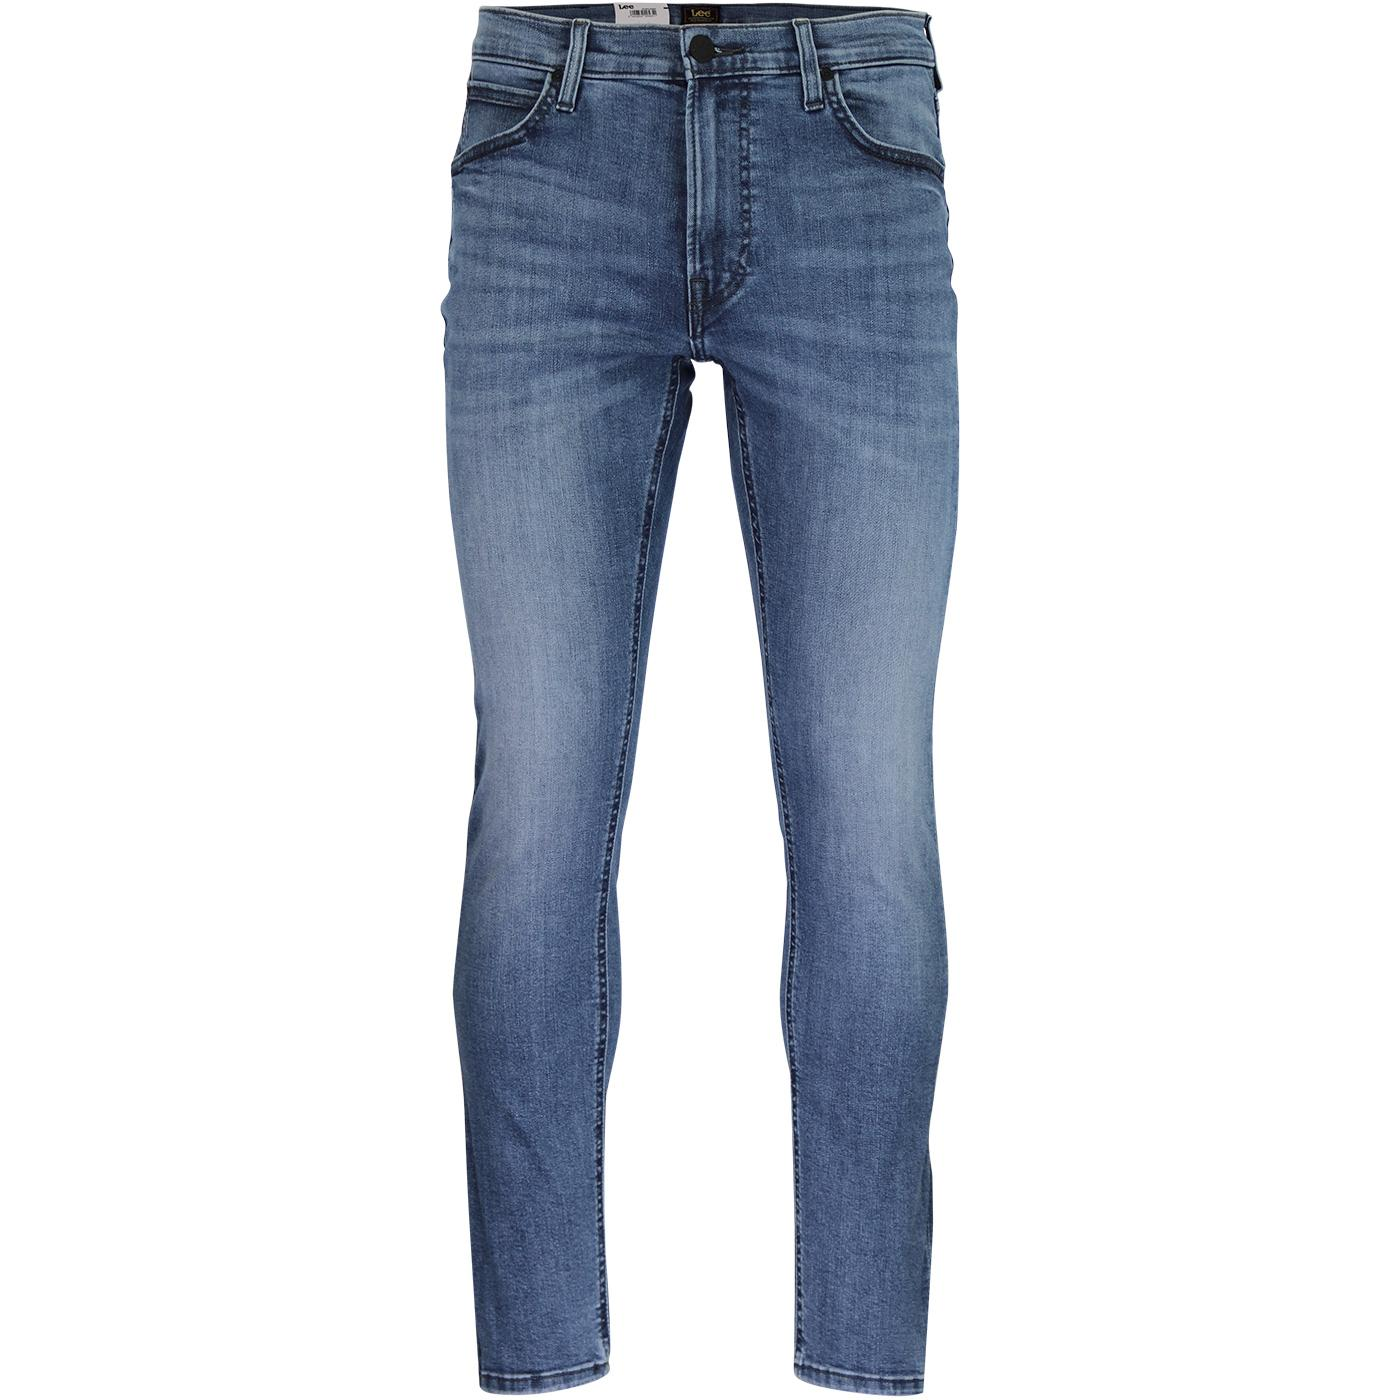 Luke LEE JEANS Mod Slim Tapered Jeans (Minimal)